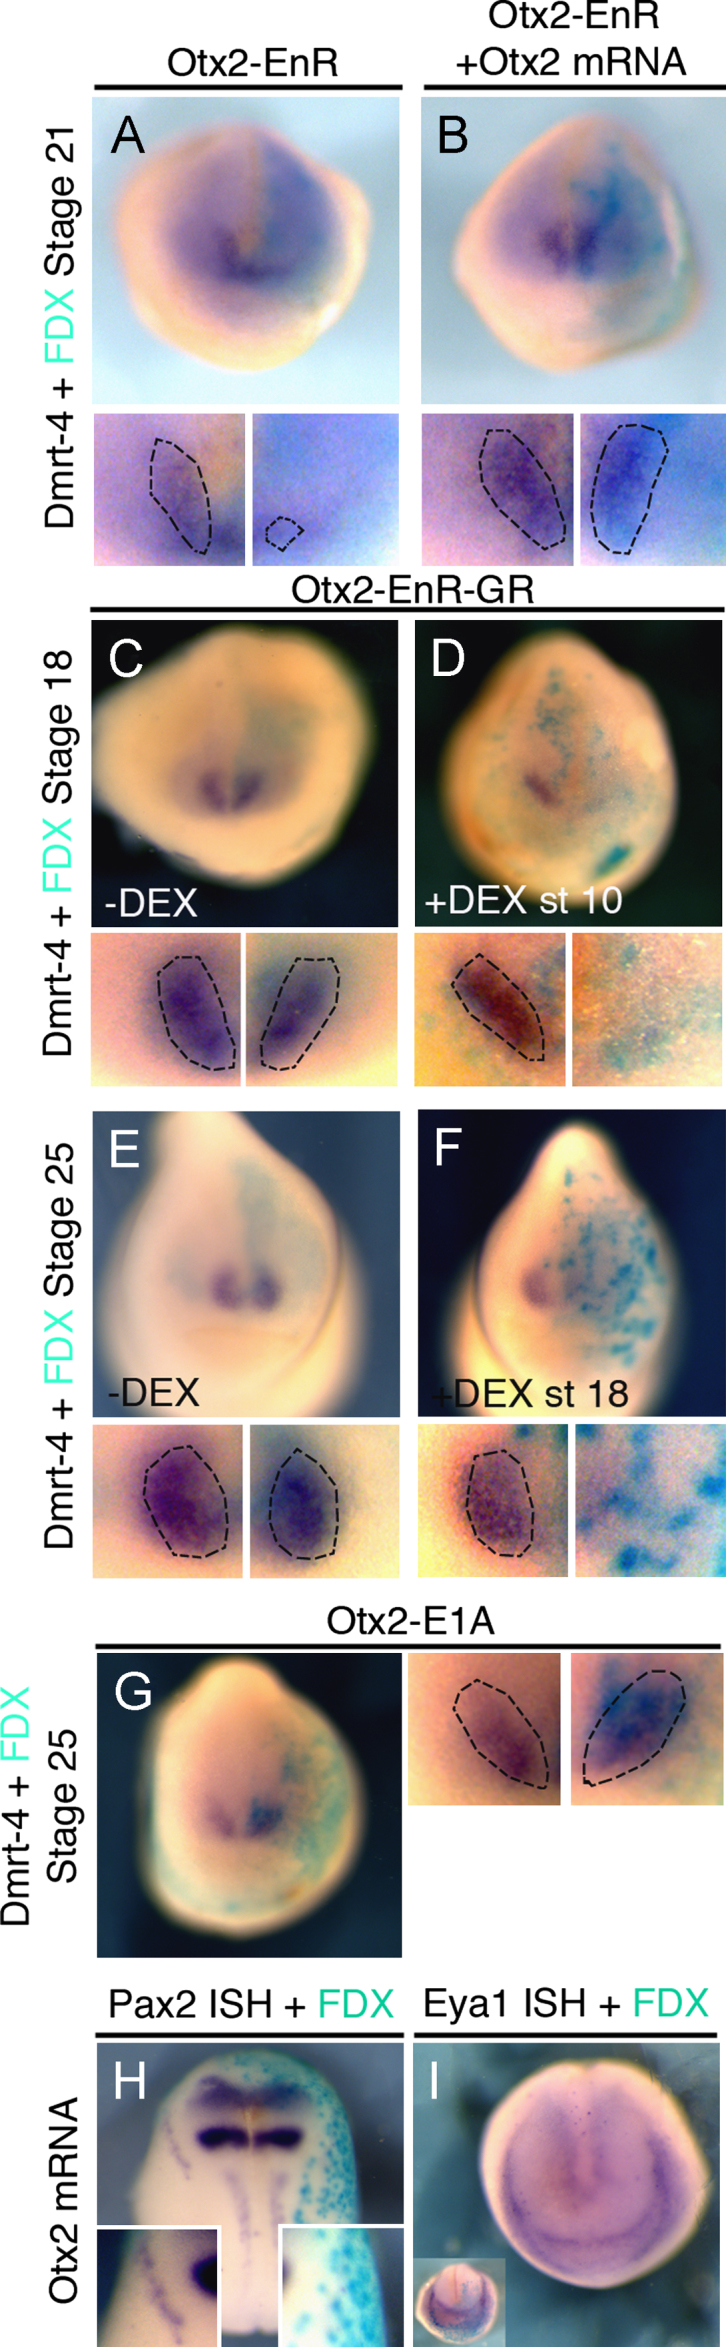 Activation of Otx2 target genes is required at early and late stages of olfactory placode formation. (A), (B) Otx 2 -EnR inhibits the olfactory placode marker Dmrt 4 at stage 21 (59%, n =29). This is rescued by co-injection of Otx 2 ((B) inhibition reduced to 12%, n =33). (C–F) Otx 2 -EnR-GR injections: in the absence of DEX Dmrt 4 expression is normal ((C) 5% affected, n =20); when DEX is added at stage 10 Dmrt 4 expression is lost at stage 18 ((D) 59%, n =44). At stage 25 Dmrt 4 is normal in absence of DEX ((E) 8% affected, n =26), while activation at stage 18 strongly reduces Dmrt 4 ((F); 63%, n =24). (G) Otx 2 -E 1 A has no effect on Dmrt 4 (0% affected, n =14). (H)–(I) Otx 2 mRNA reduces Pax 2 ((H) 72%, n =25), but does not change Eya 1 ((I) 0% affected, n =44). All embryos were injected into the A3 blastomere at the 32-cell stage and are shown in frontal view with dorsal to the top. High magnifications of the olfactory region are shown in small panels; dotted lines demarcate placodal Dmrt 4. Turquoise staining reveals the lineage tracer FDX.